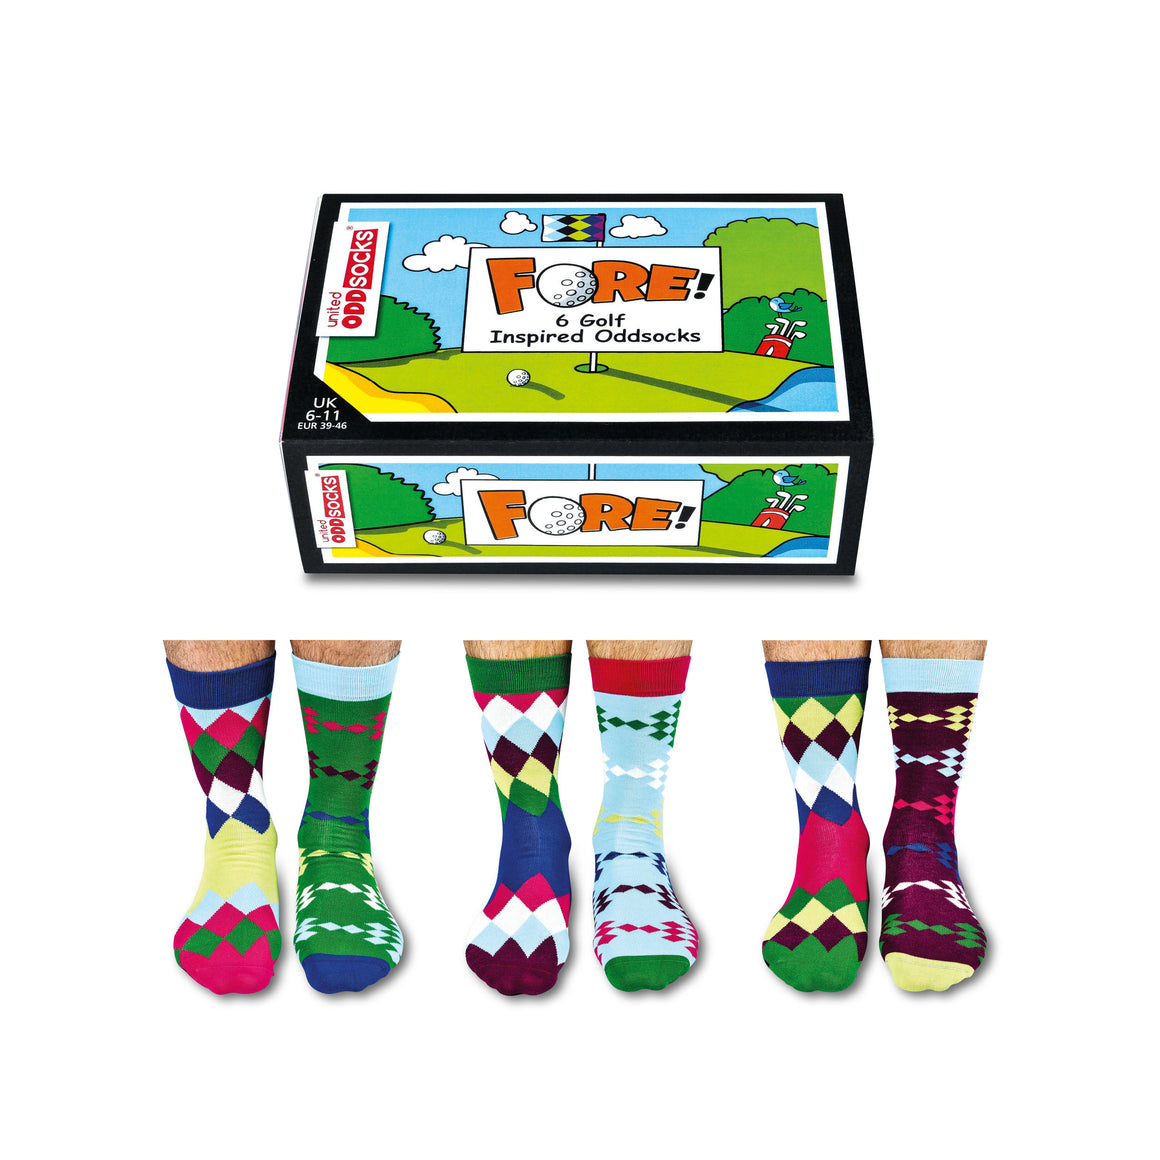 United Odd Socks Fore Mens Gift Box - The Love Trees